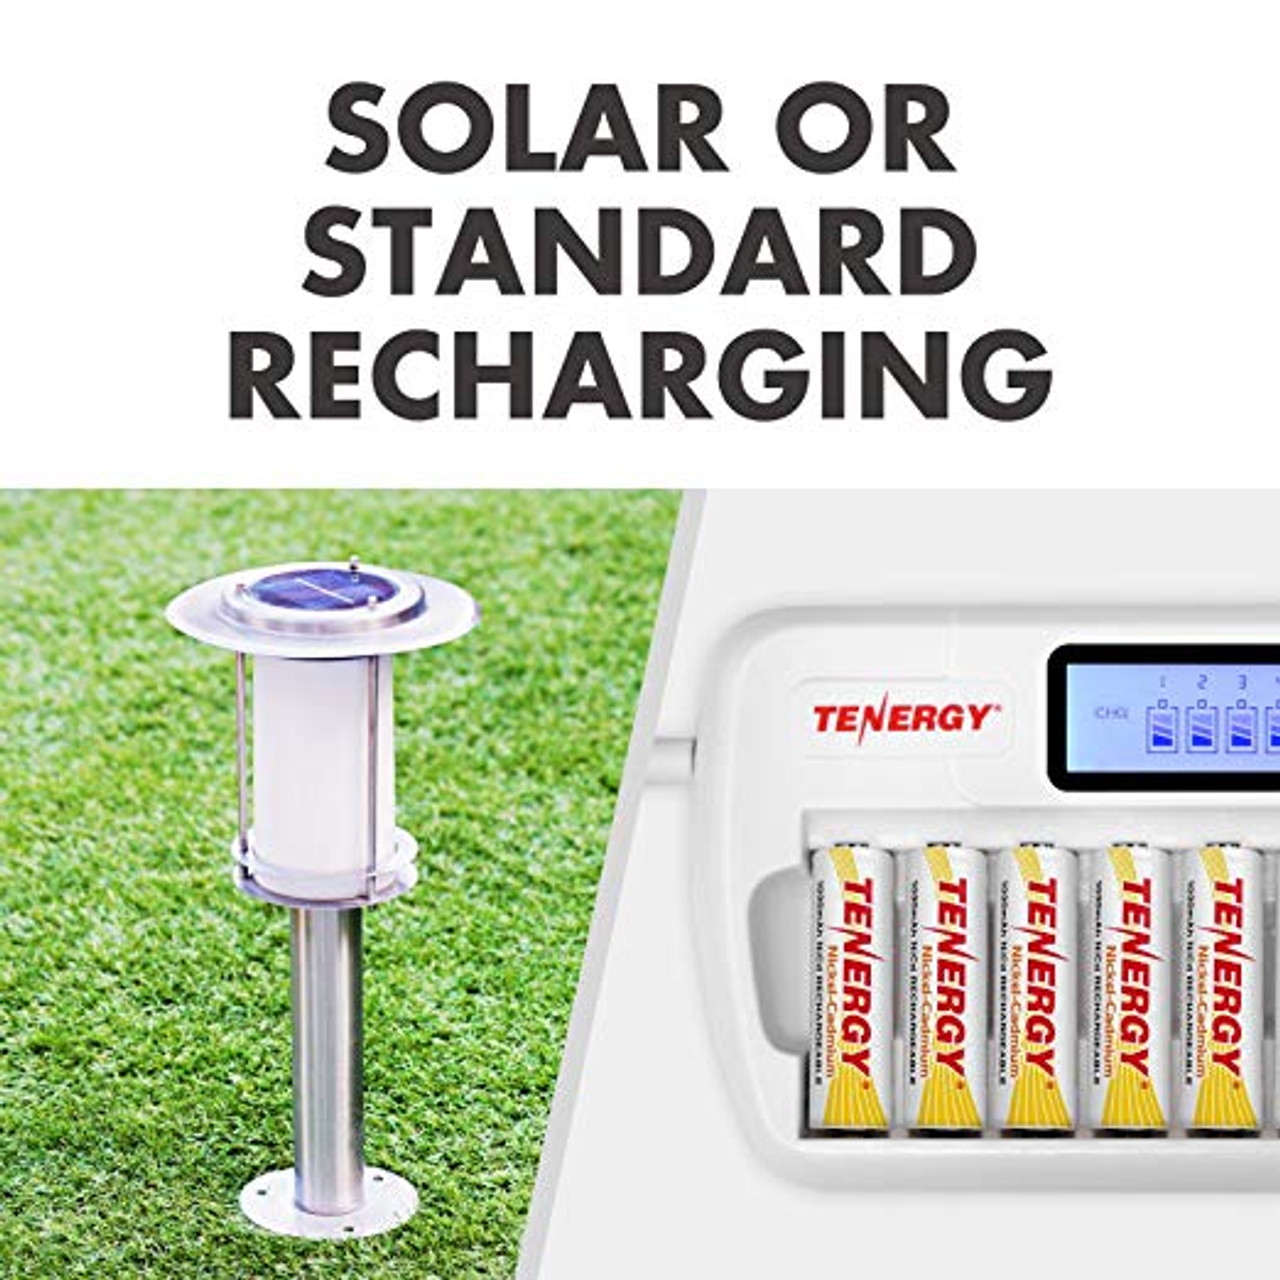 4 Pack Tenergy AA 1000mAh NiCd Rechargeable Batteries for Solar Lights